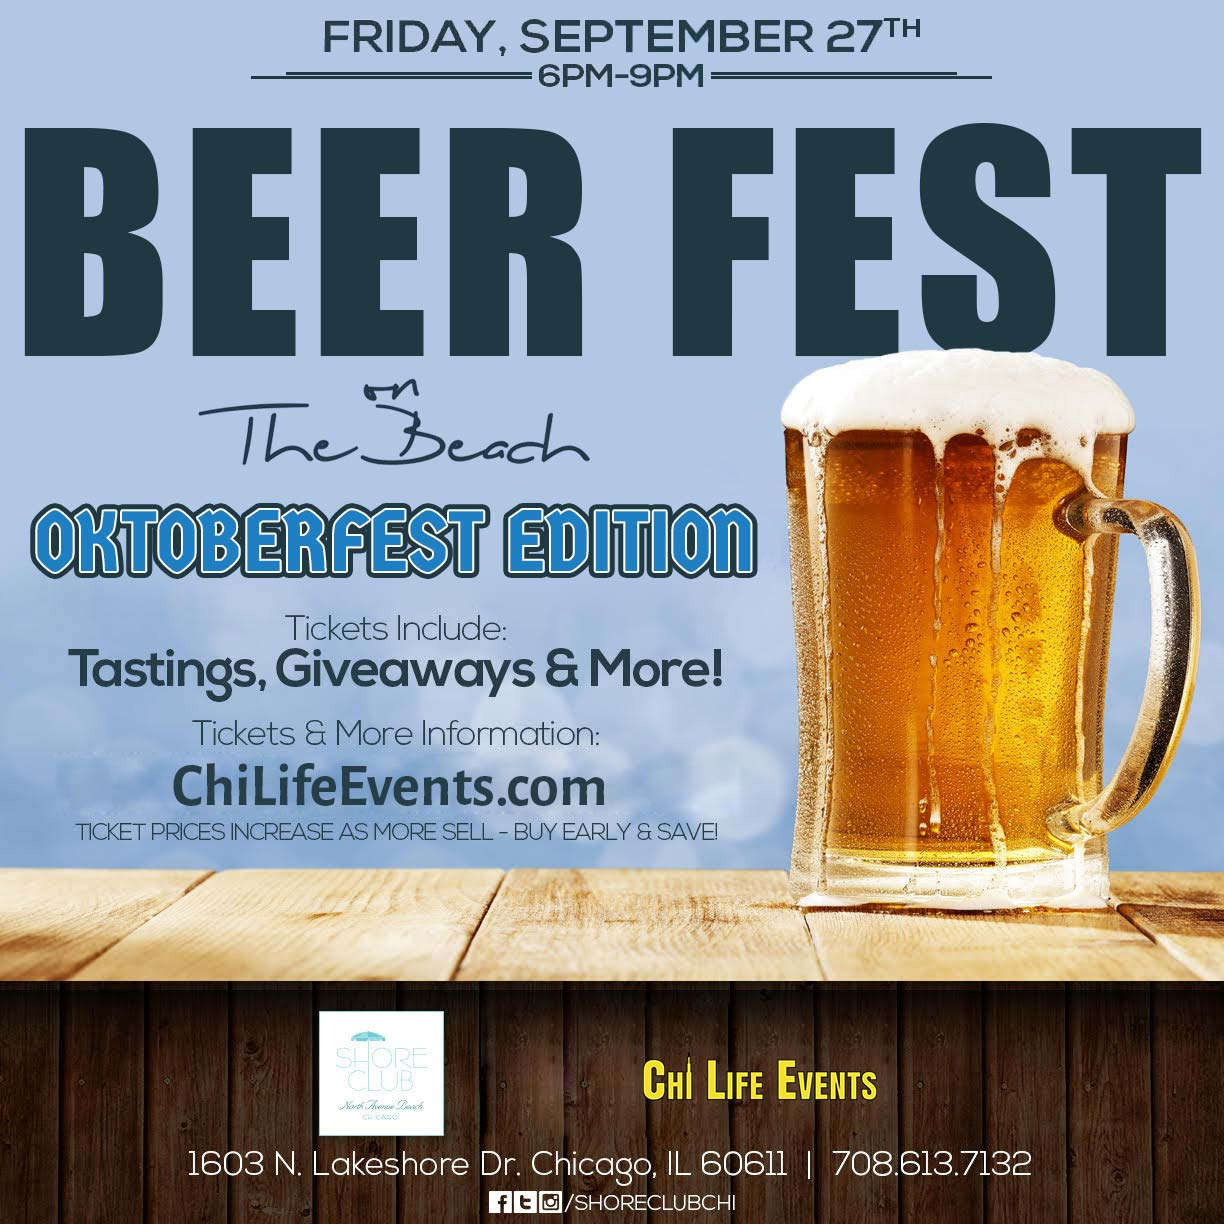 Oktoberfest on the Beach Party - Tickets include 3 hours of beer tastings, giveaways & MORE! We will have a variety of different beer available for sampling!